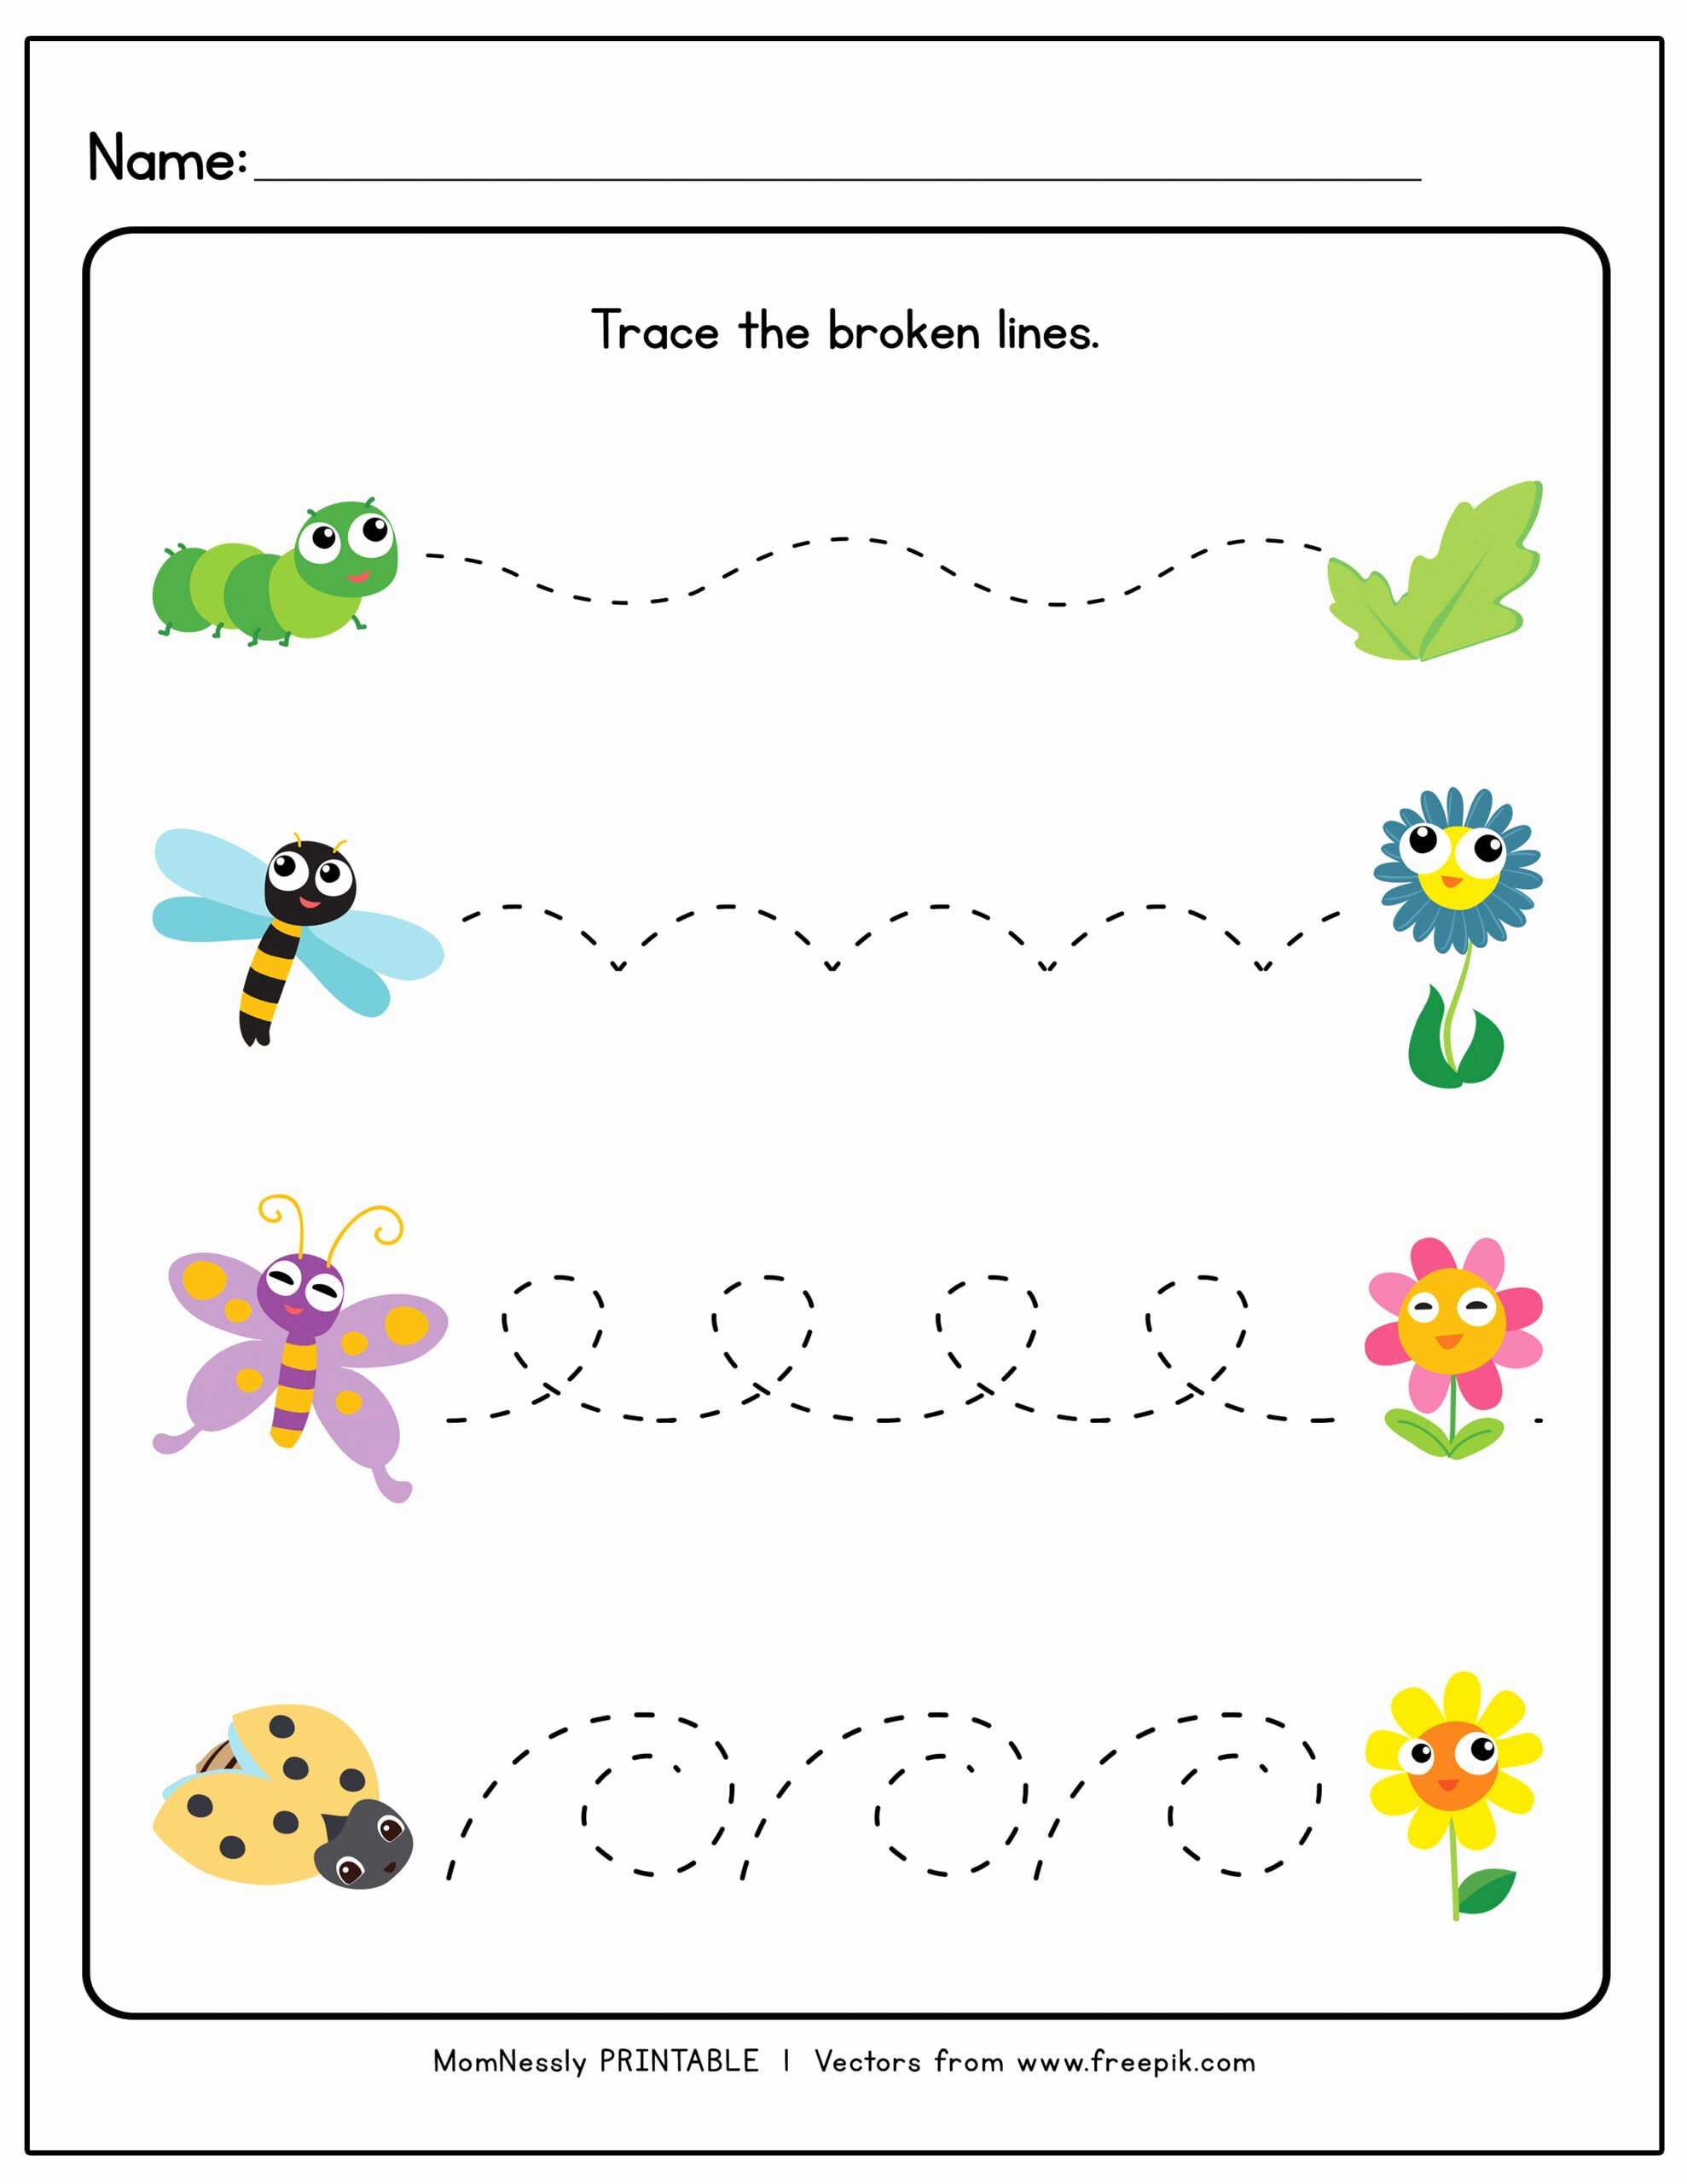 Trace the Lines Worksheets for Preschoolers Lovely Tracing Lines Worksheets Https Tribobot for toddlers Curved